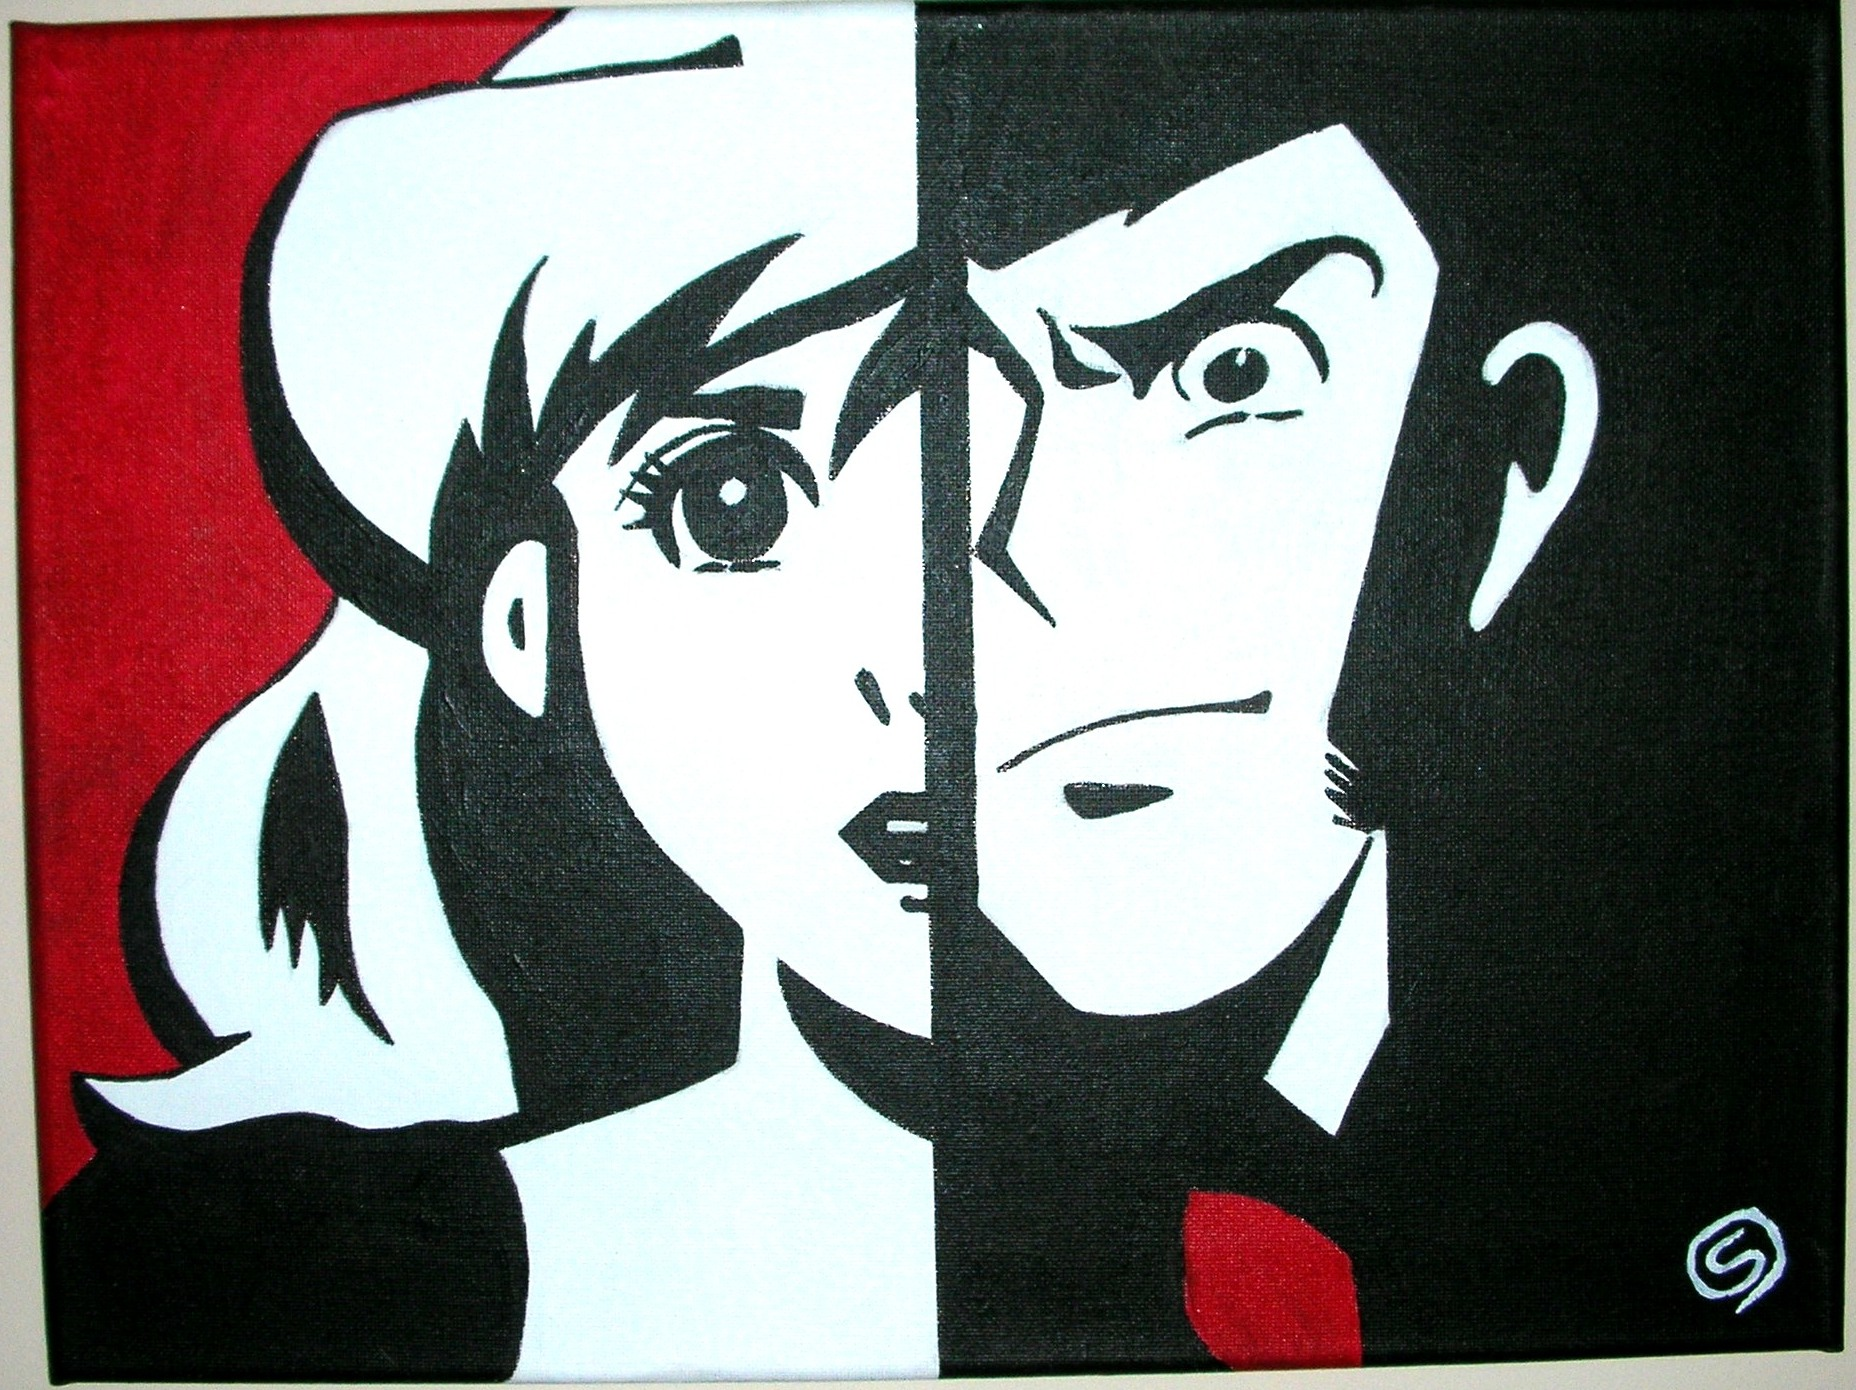 Tutorial pop art pennelli pazzi for Arredamenti lupin